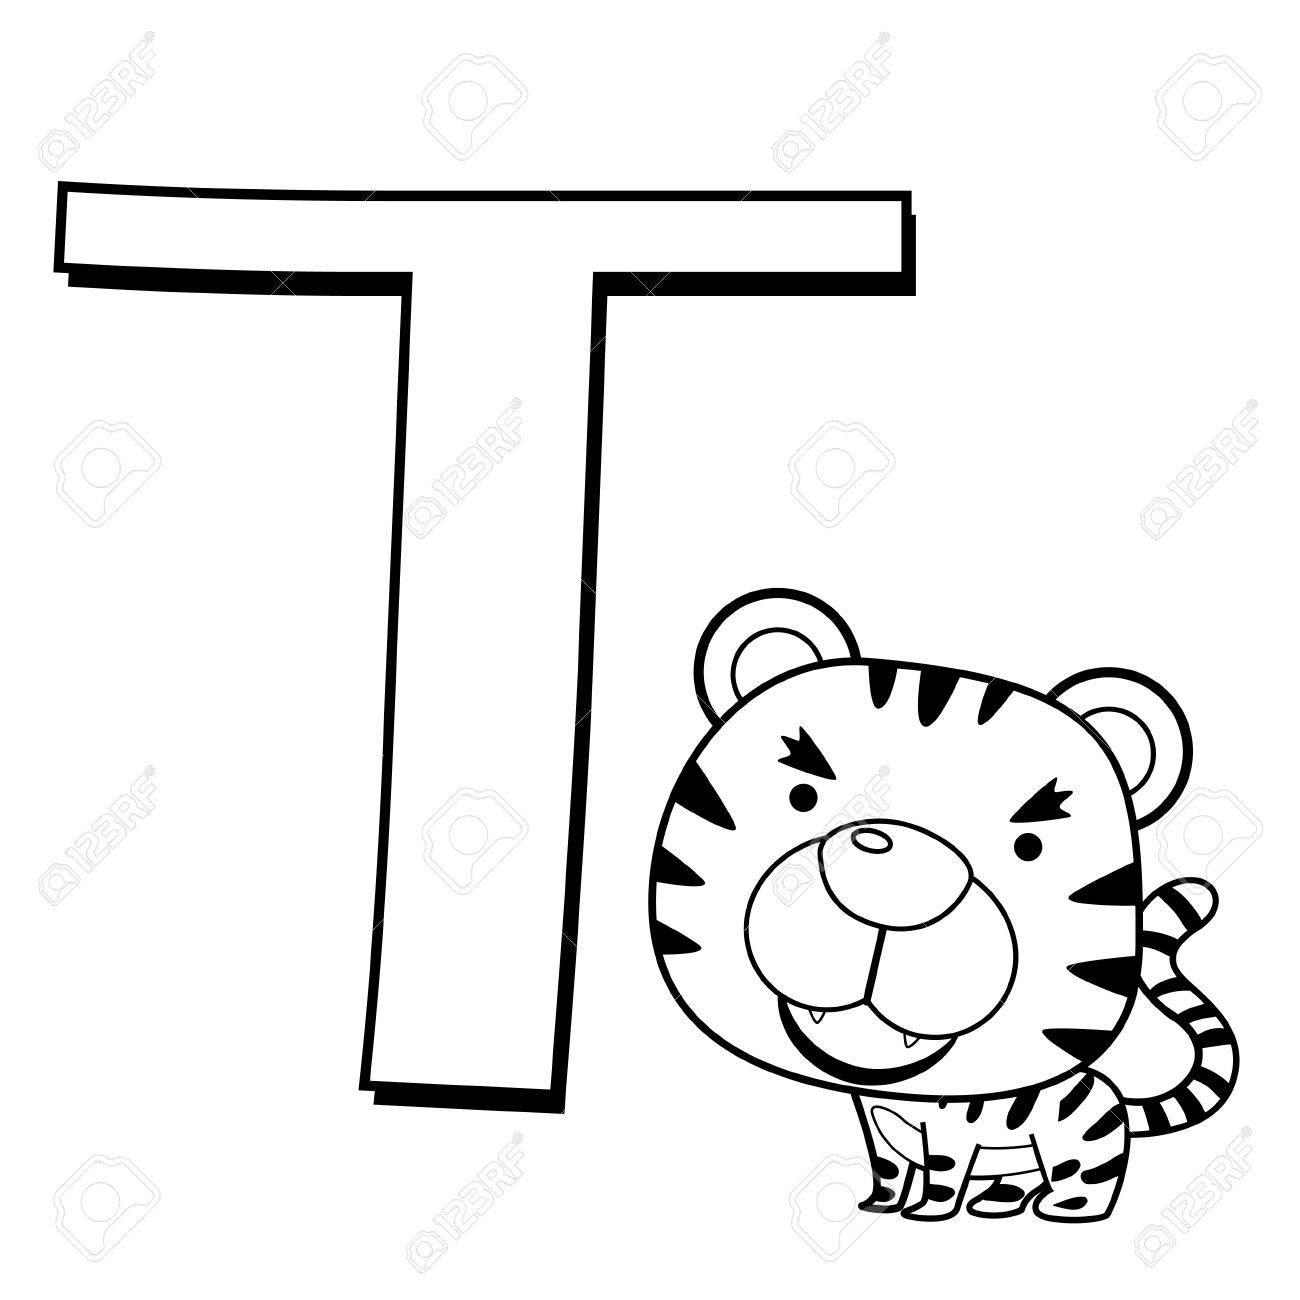 coloring alphabet for kids t with tiger royalty free cliparts